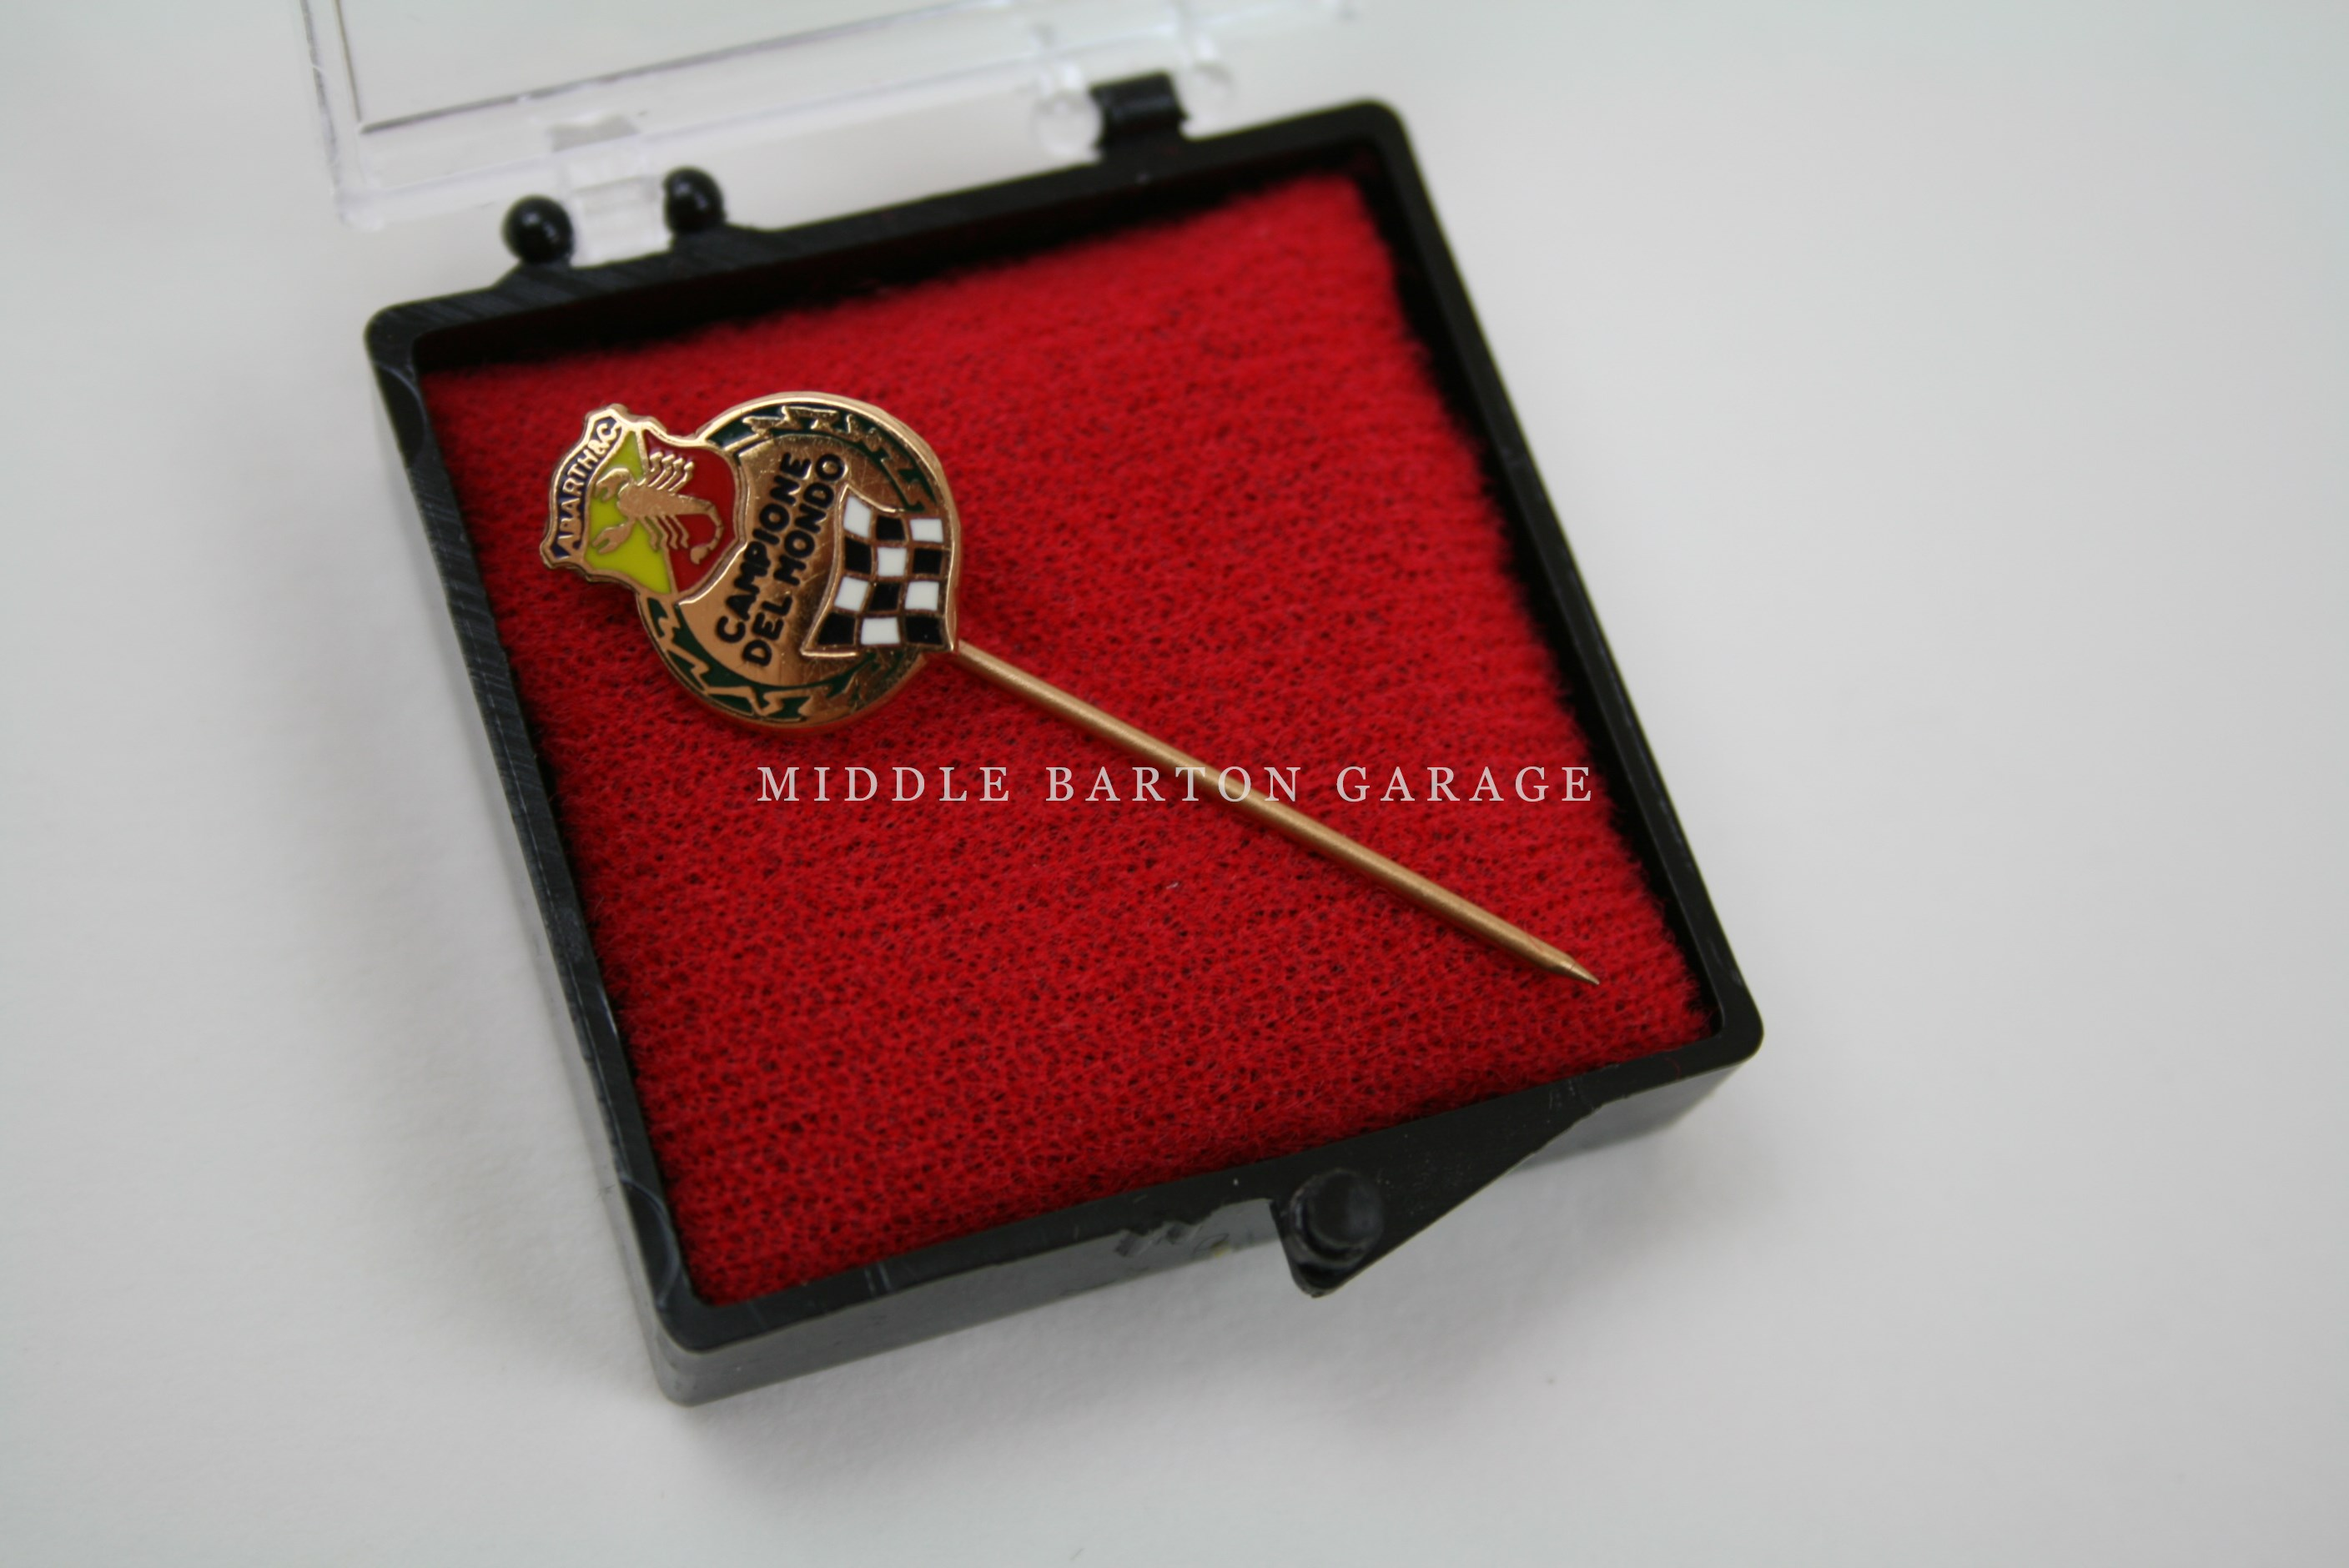 ORIGINAL 1960's CAMPIONE DEL MONDO PIN - BRONZE COLOUR